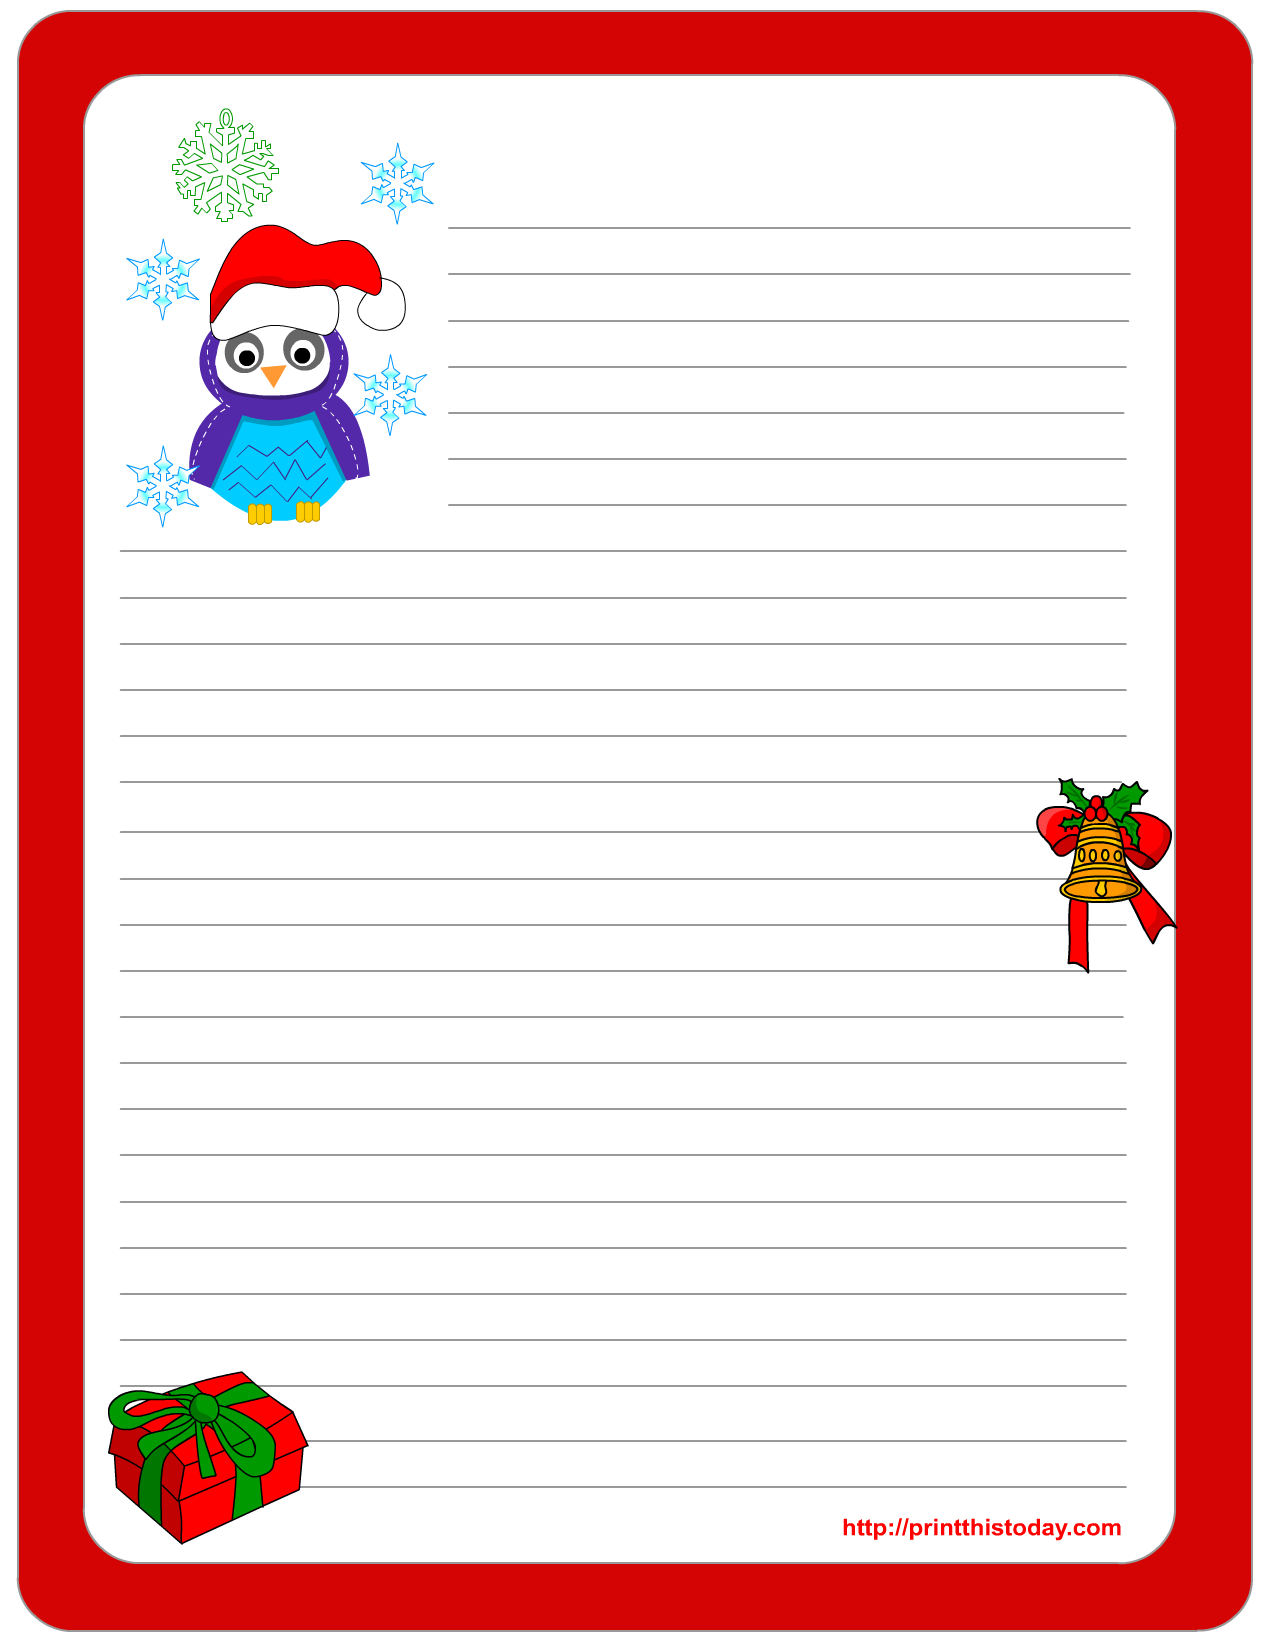 Christmas Stationery With Cute Owl Design  Free Printable Christmas Lists